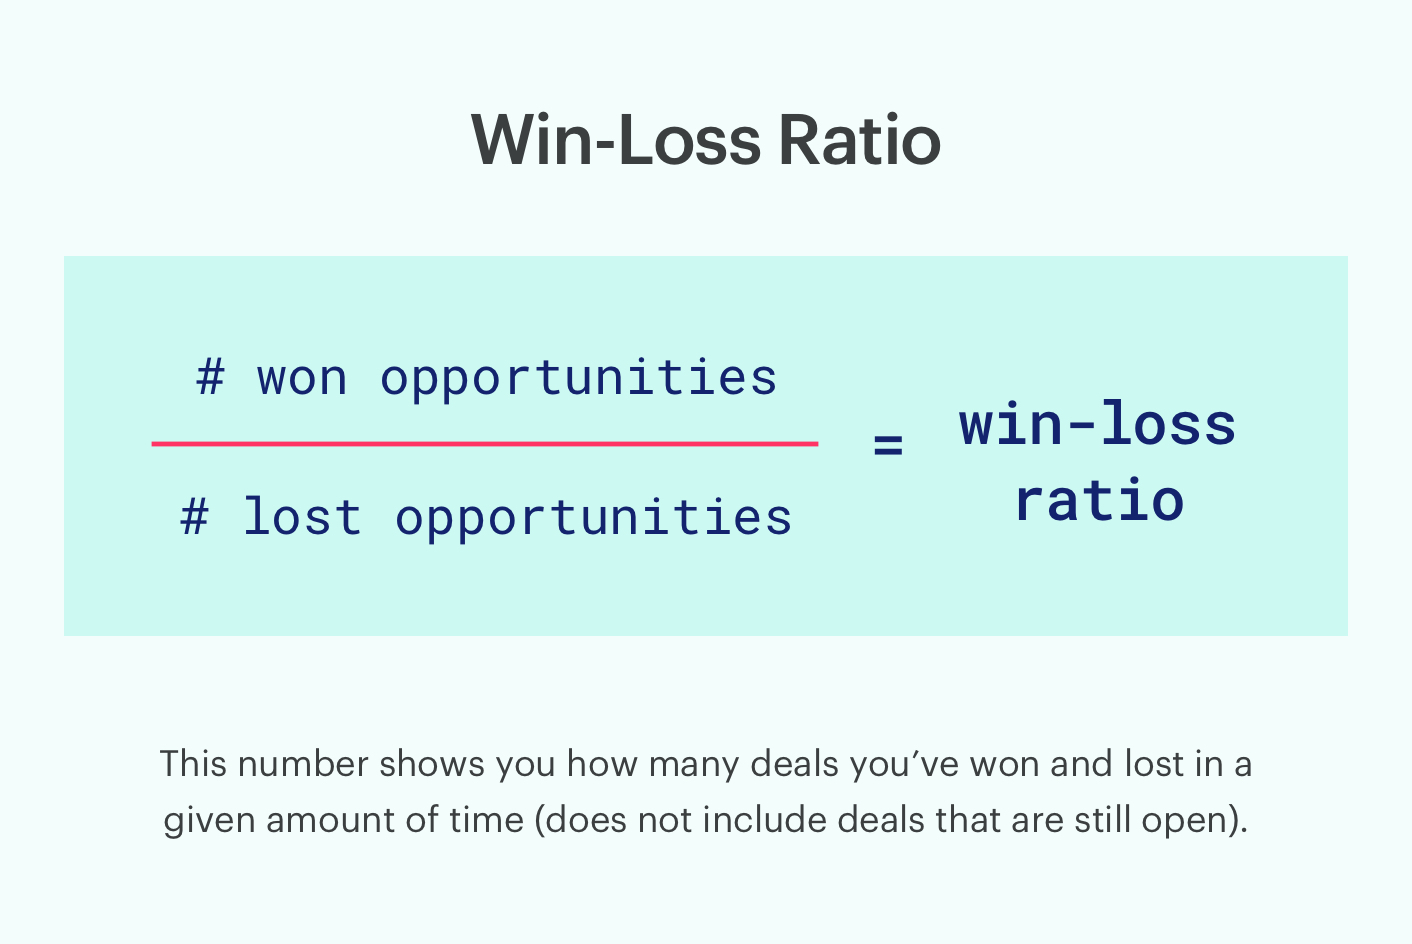 how to calculate win-loss ratio